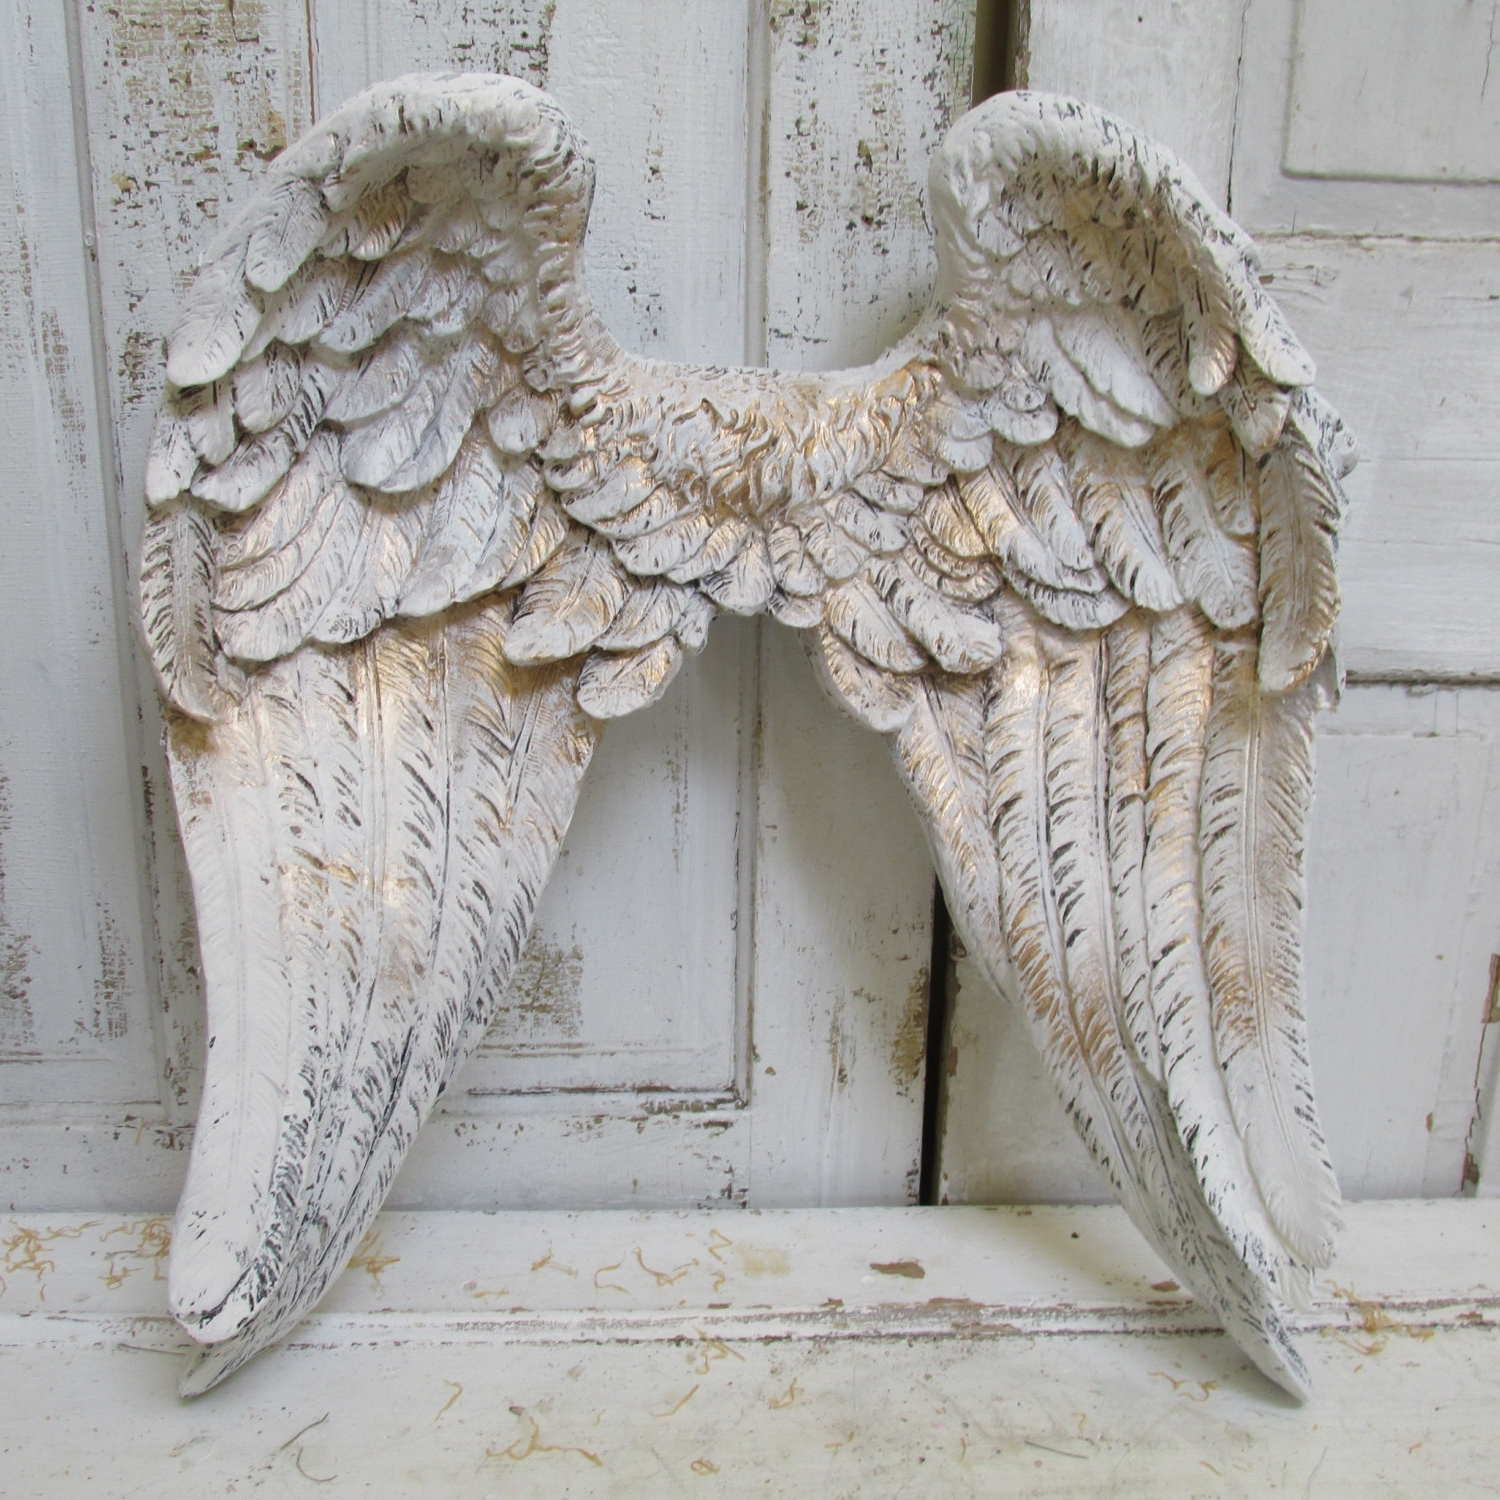 Preferred Large Angel Wings Wall Sculpture Hand Painted White Accented Inside Angel Wings Sculpture Plaque Wall Art (View 10 of 15)